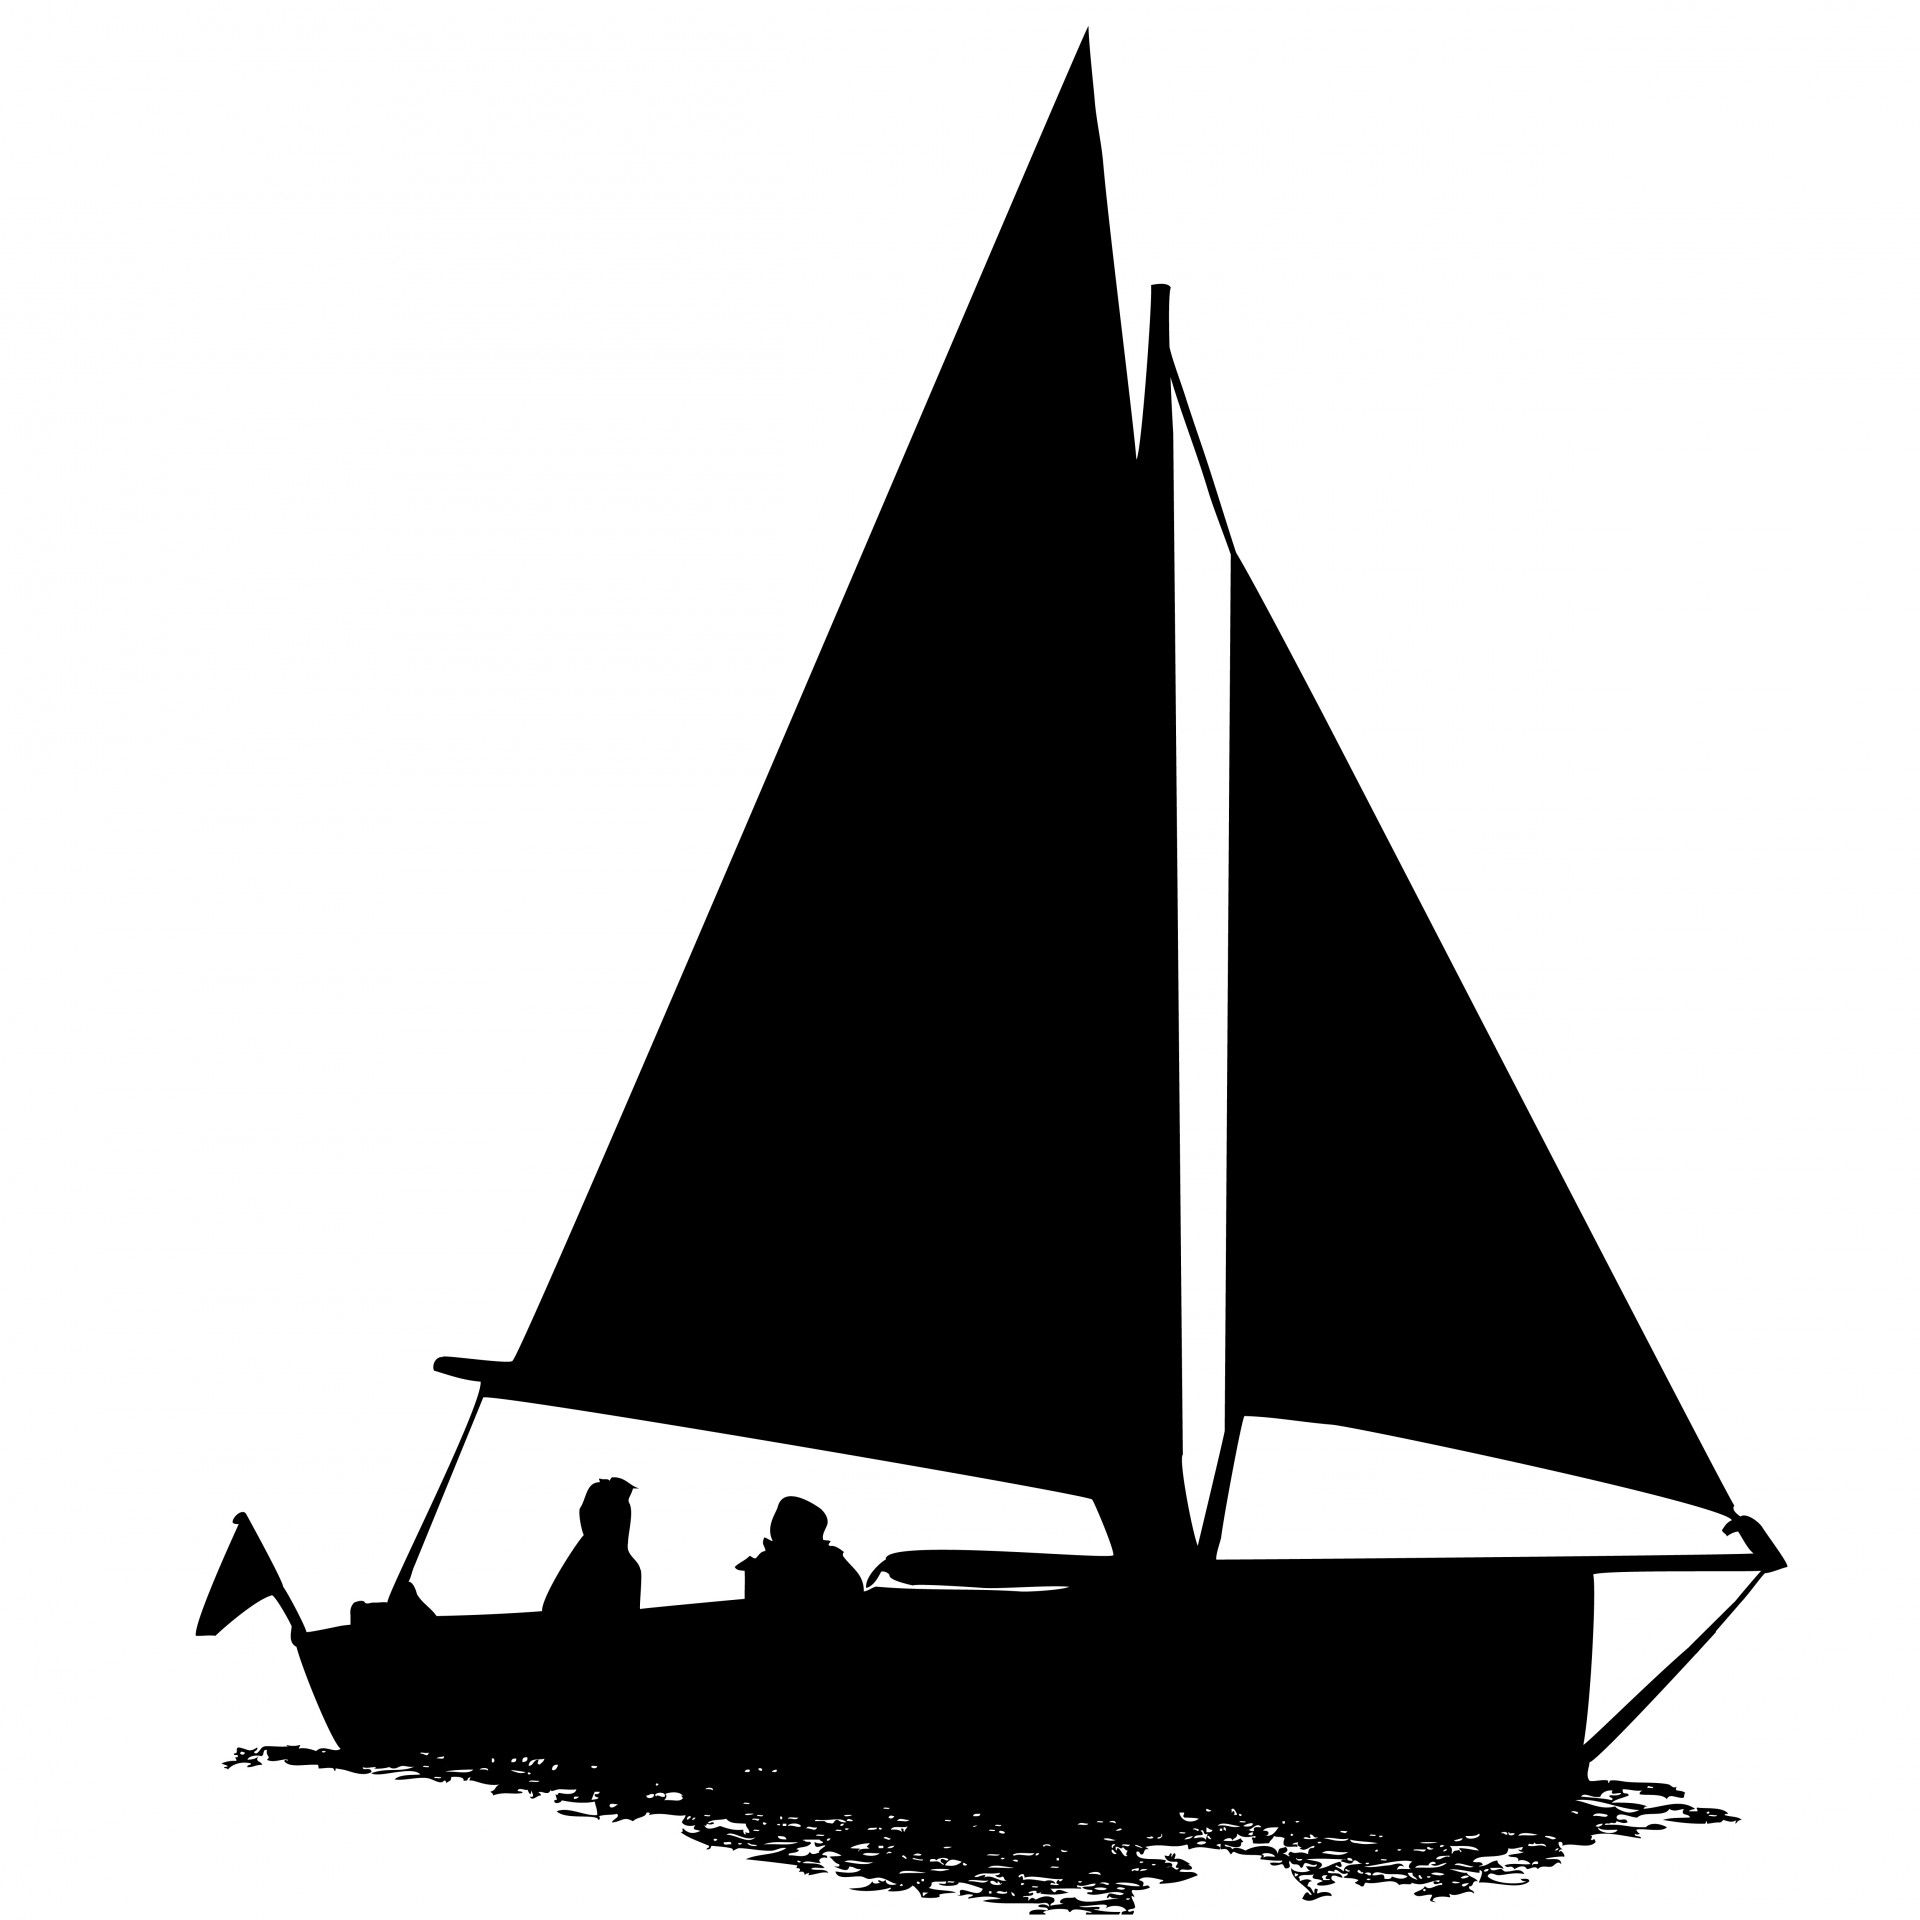 image library library Sailing boat drawing in. Yacht clipart silhouette